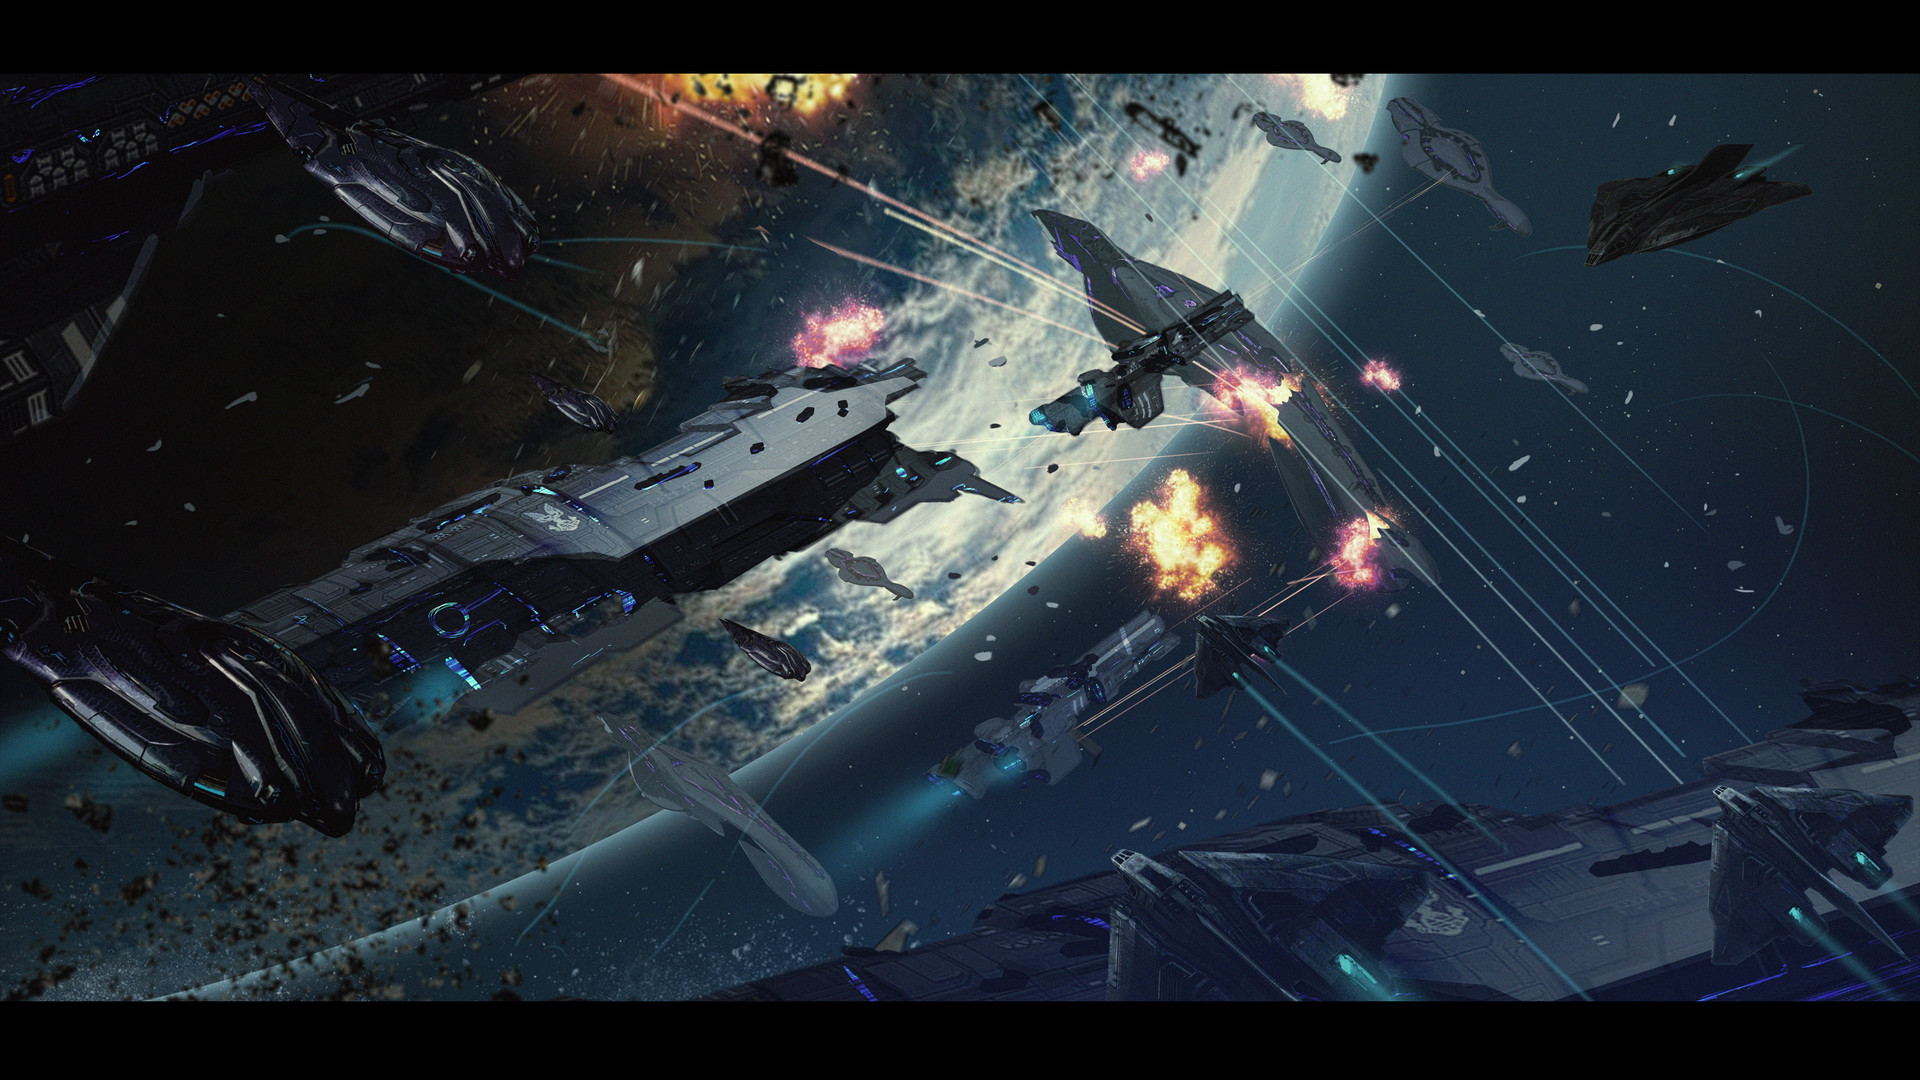 Nintnedo Fall Wallpapers Creative Assembly Shares Rejected Halo Wars 3 Concept